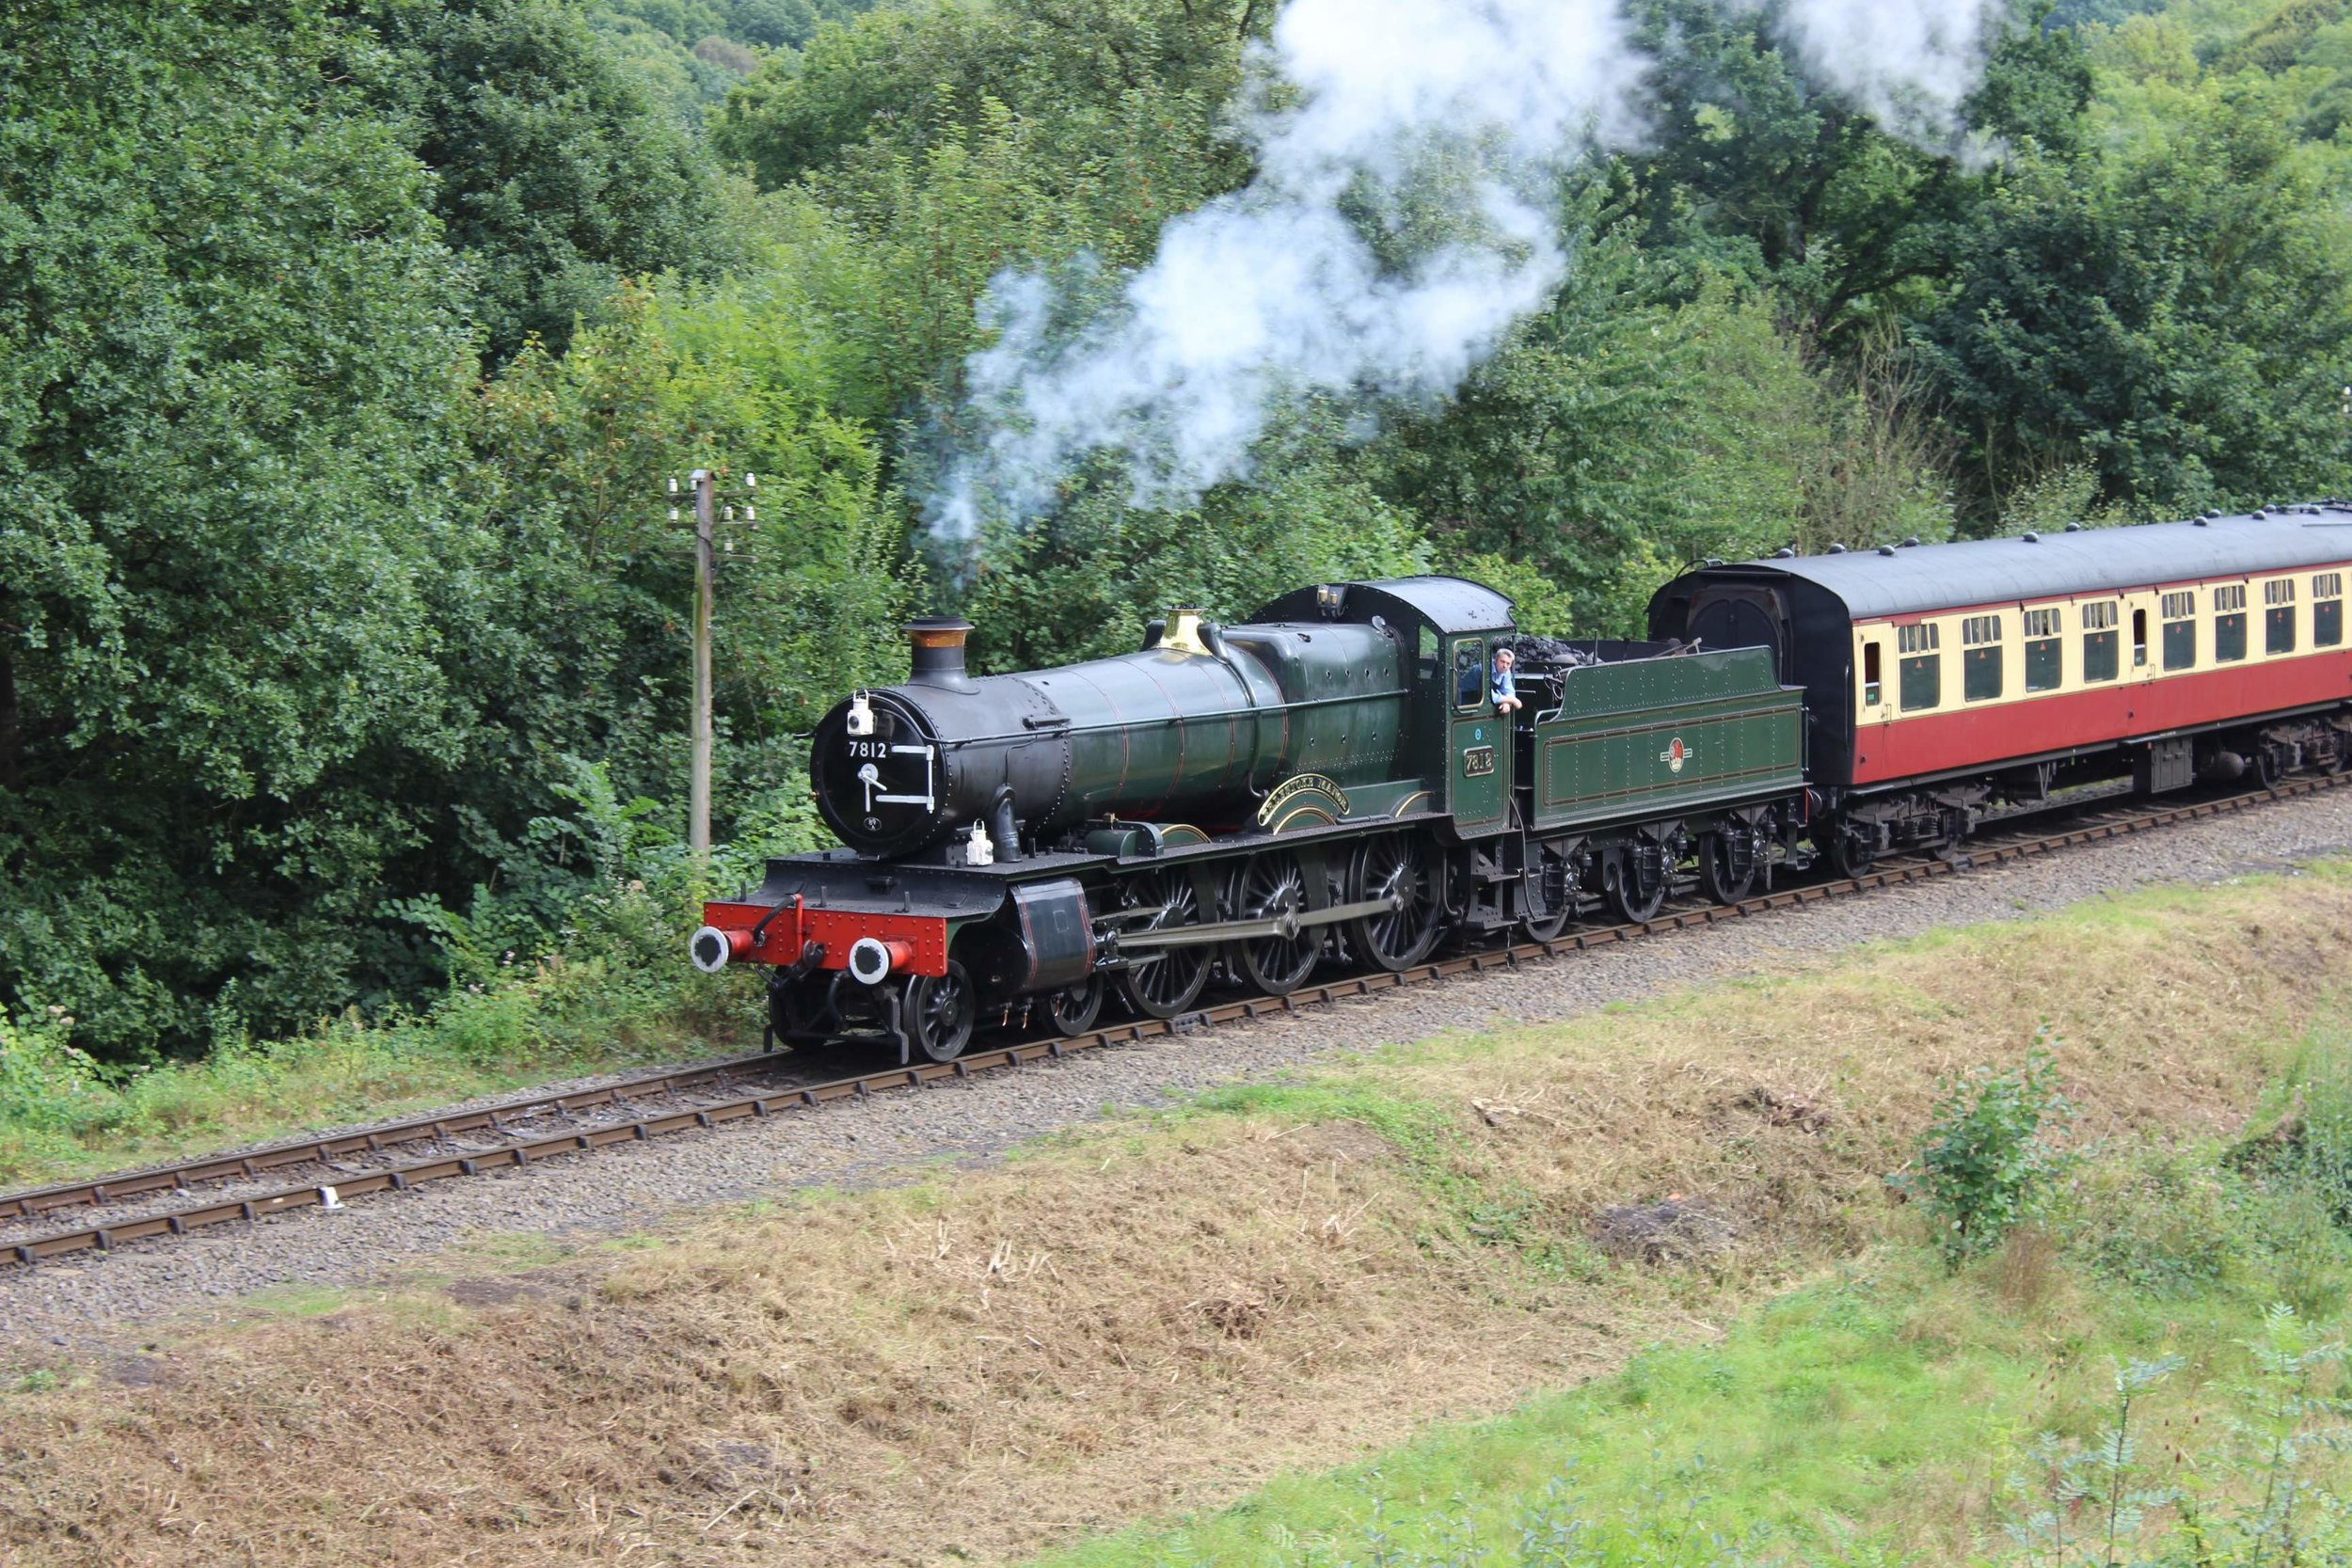 Coming out of traffic at the end of the year, 'Manor' No. 7812  Erlestoke Manor  steams past the Engine House at Highley with the Bridgnorth-bound train on September 9 2016. THOMAS BRIGHT/SR